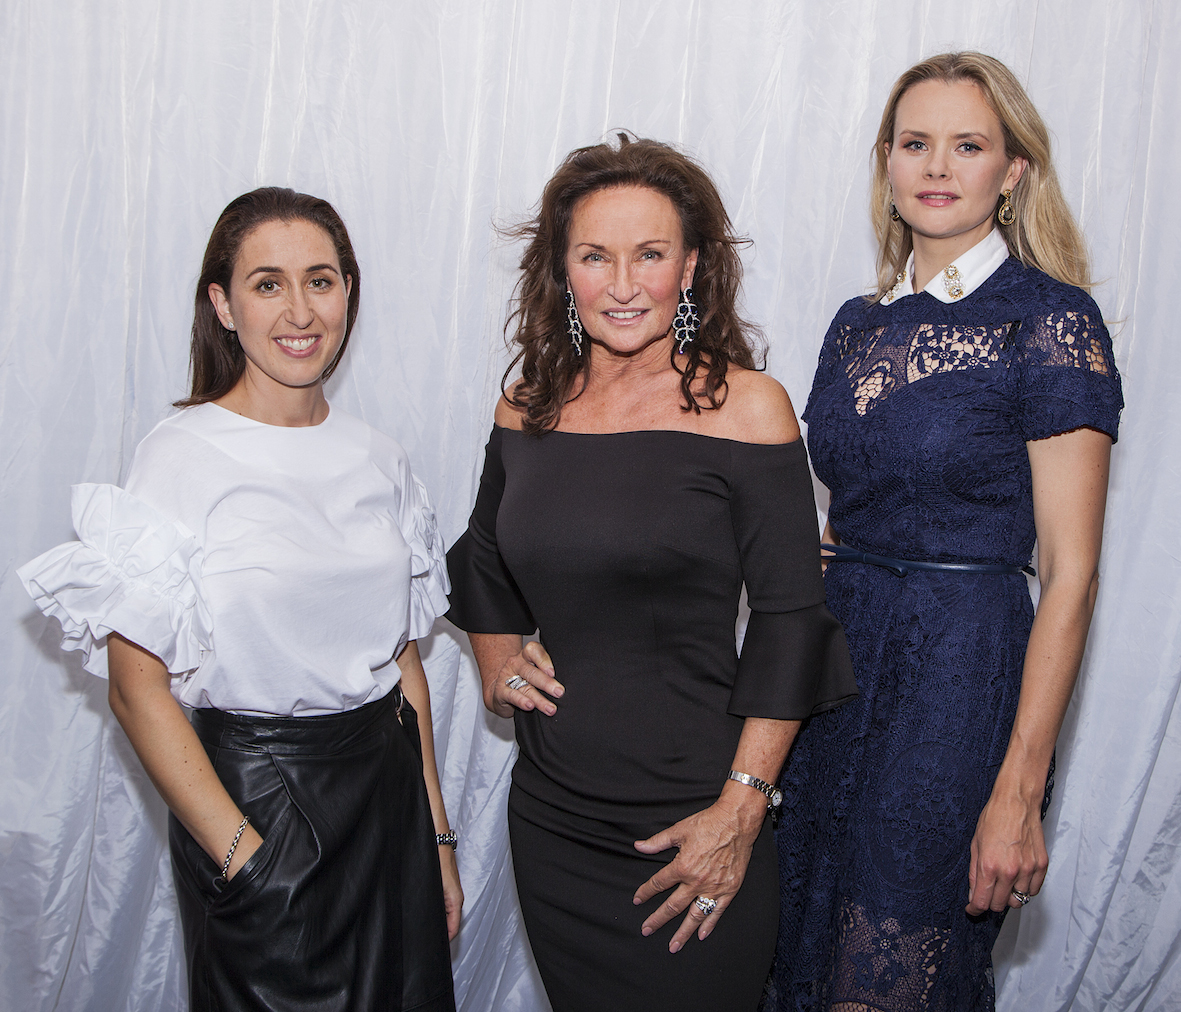 It's a family Affair as the business is run by a family united in their passion for fashion. Pictured Cecile Lee Coveney, Celia's daughter, Celia Holman Lee and Asta Cibulskyte Lee, Celia's daughter-in-law. Picture: Dolf Patijn/ilovelimerick.